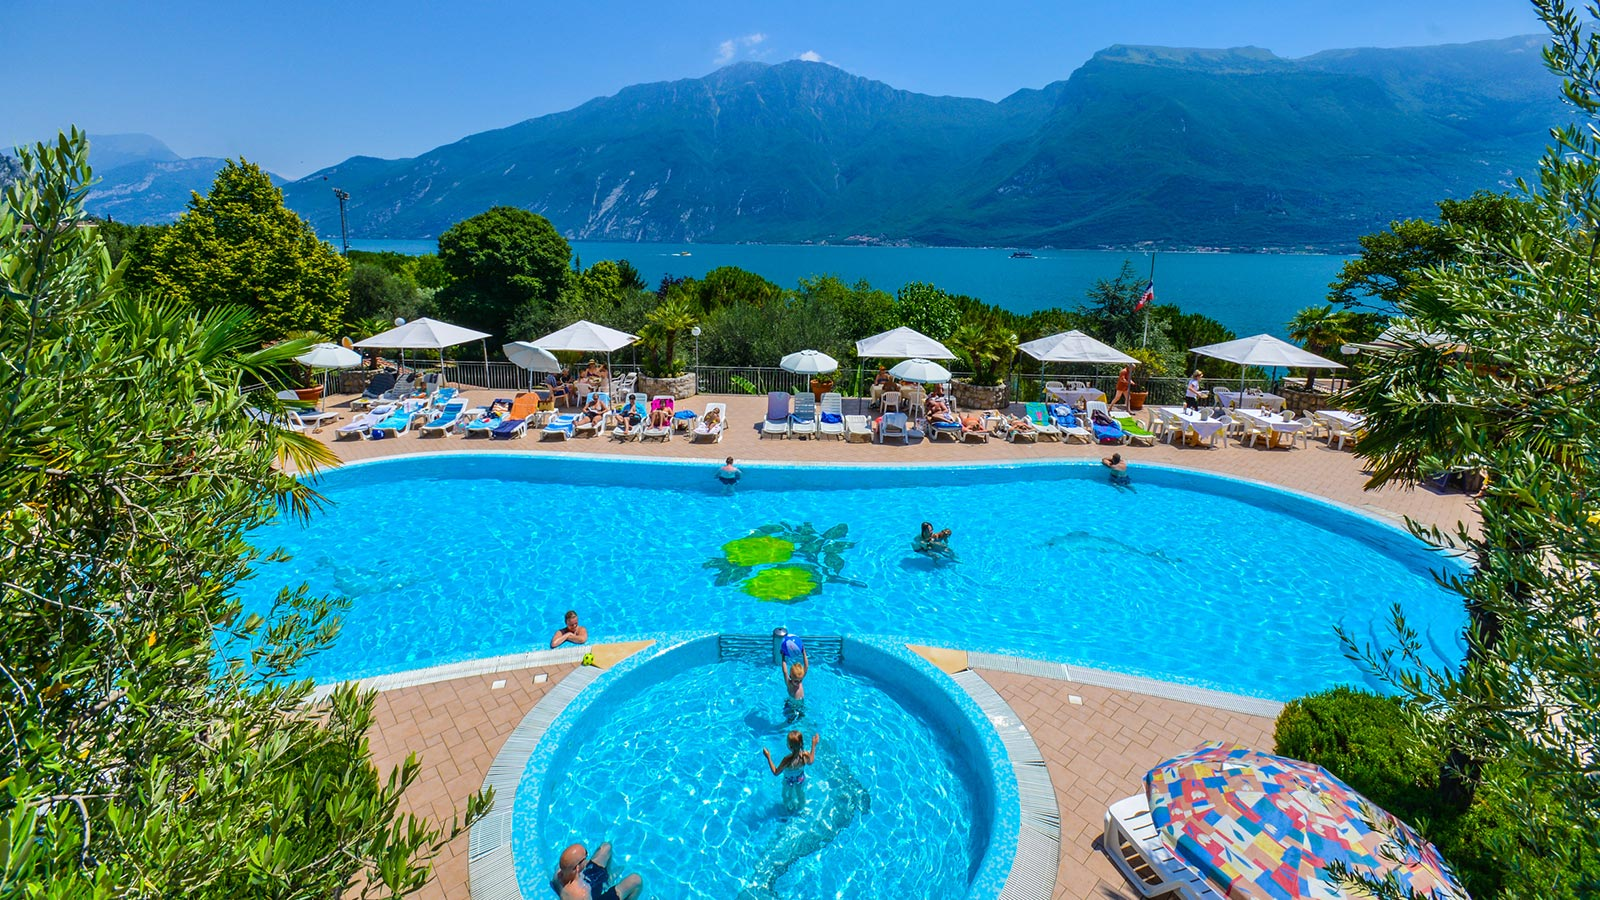 Pool party at Campeggi limone sul Garda park